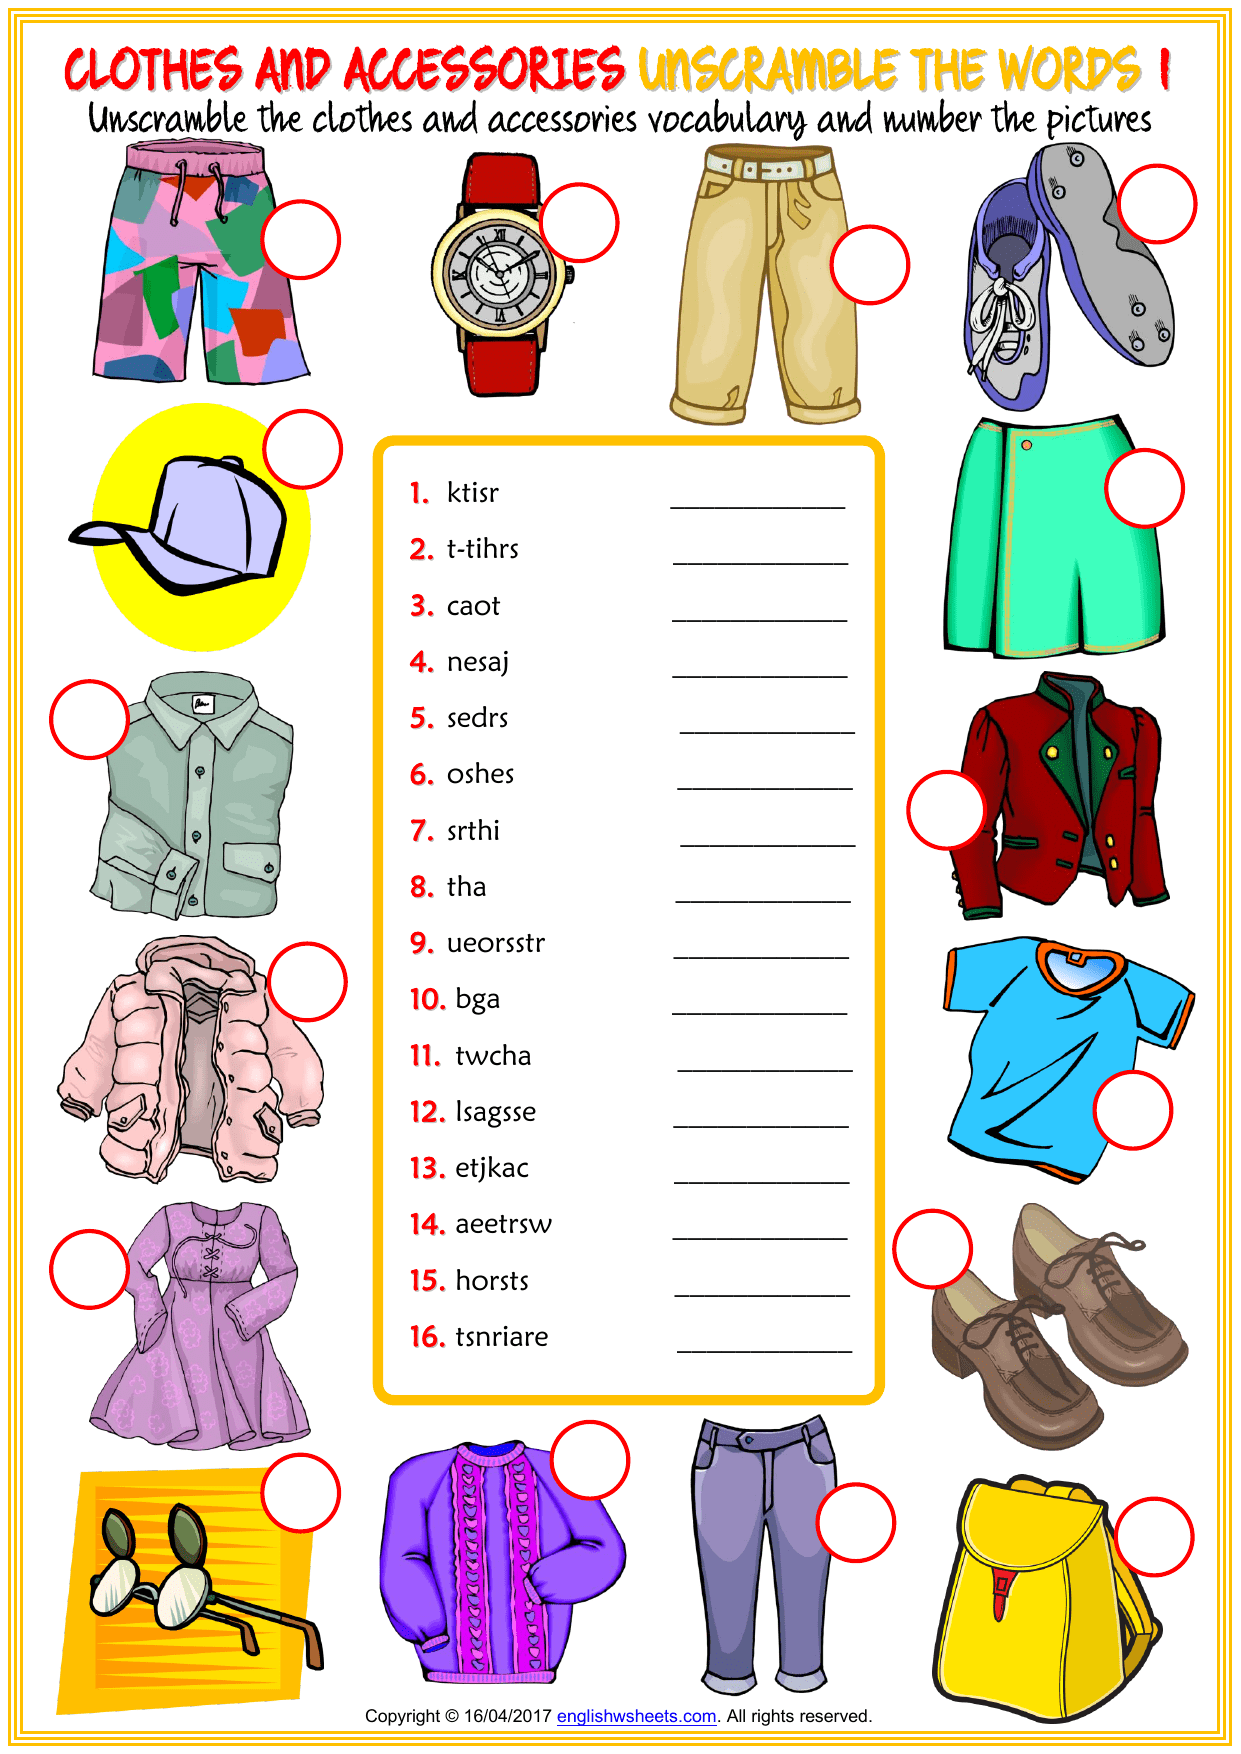 Clothes And Accessories Vocabulary Esl Unscramble The